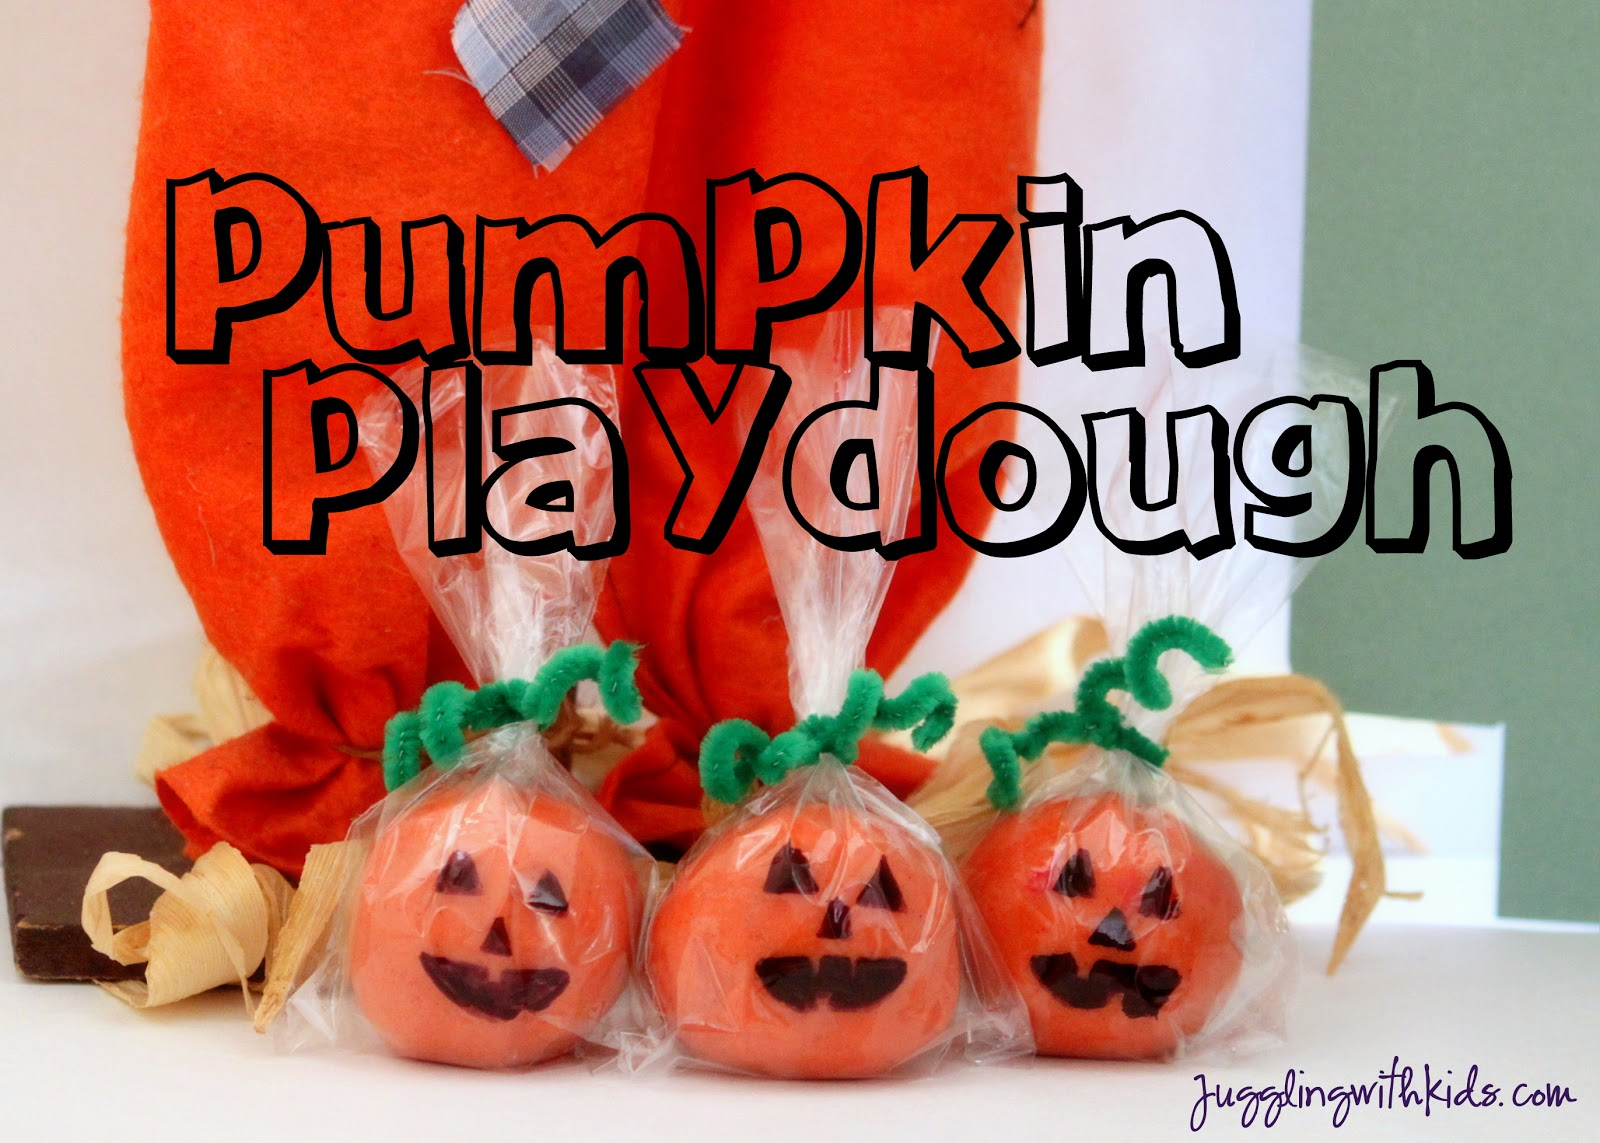 Classroom Birthday Party Favors ~ Cute pumpkin spice playdough gifts juggling with kids